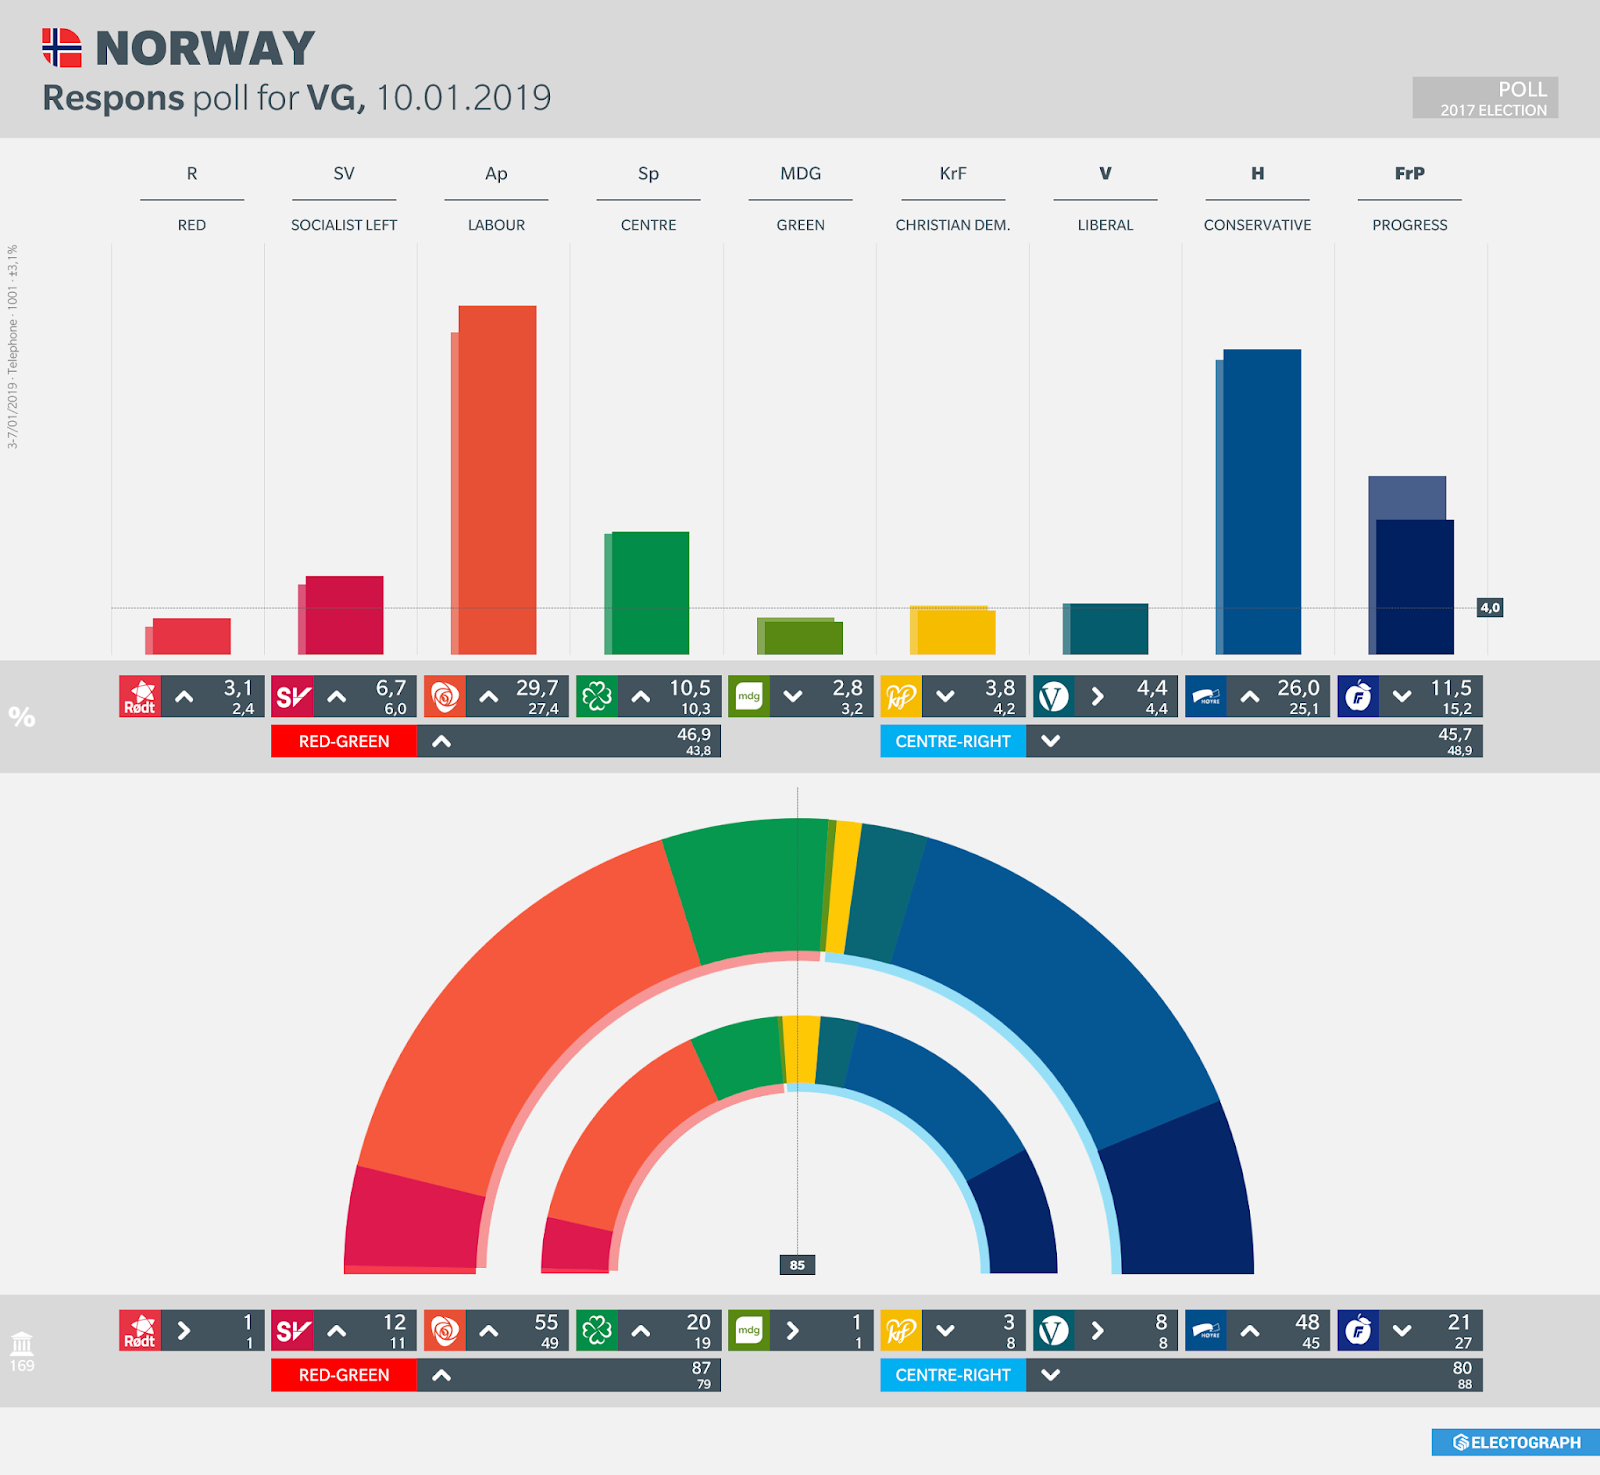 NORWAY: Respons poll chart for VG, 10 January 2019